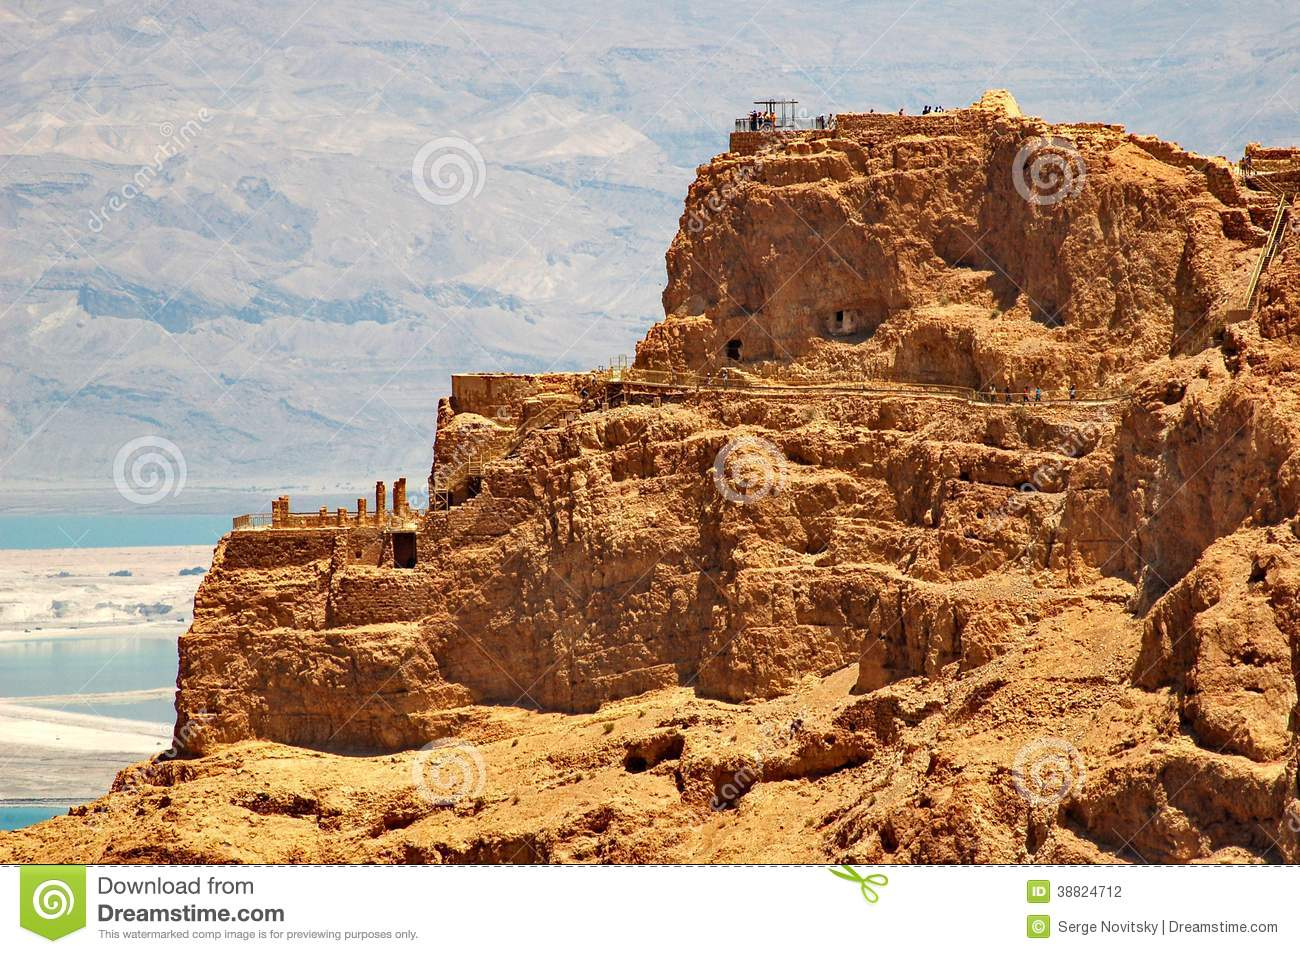 View of Masada and Dead Sea